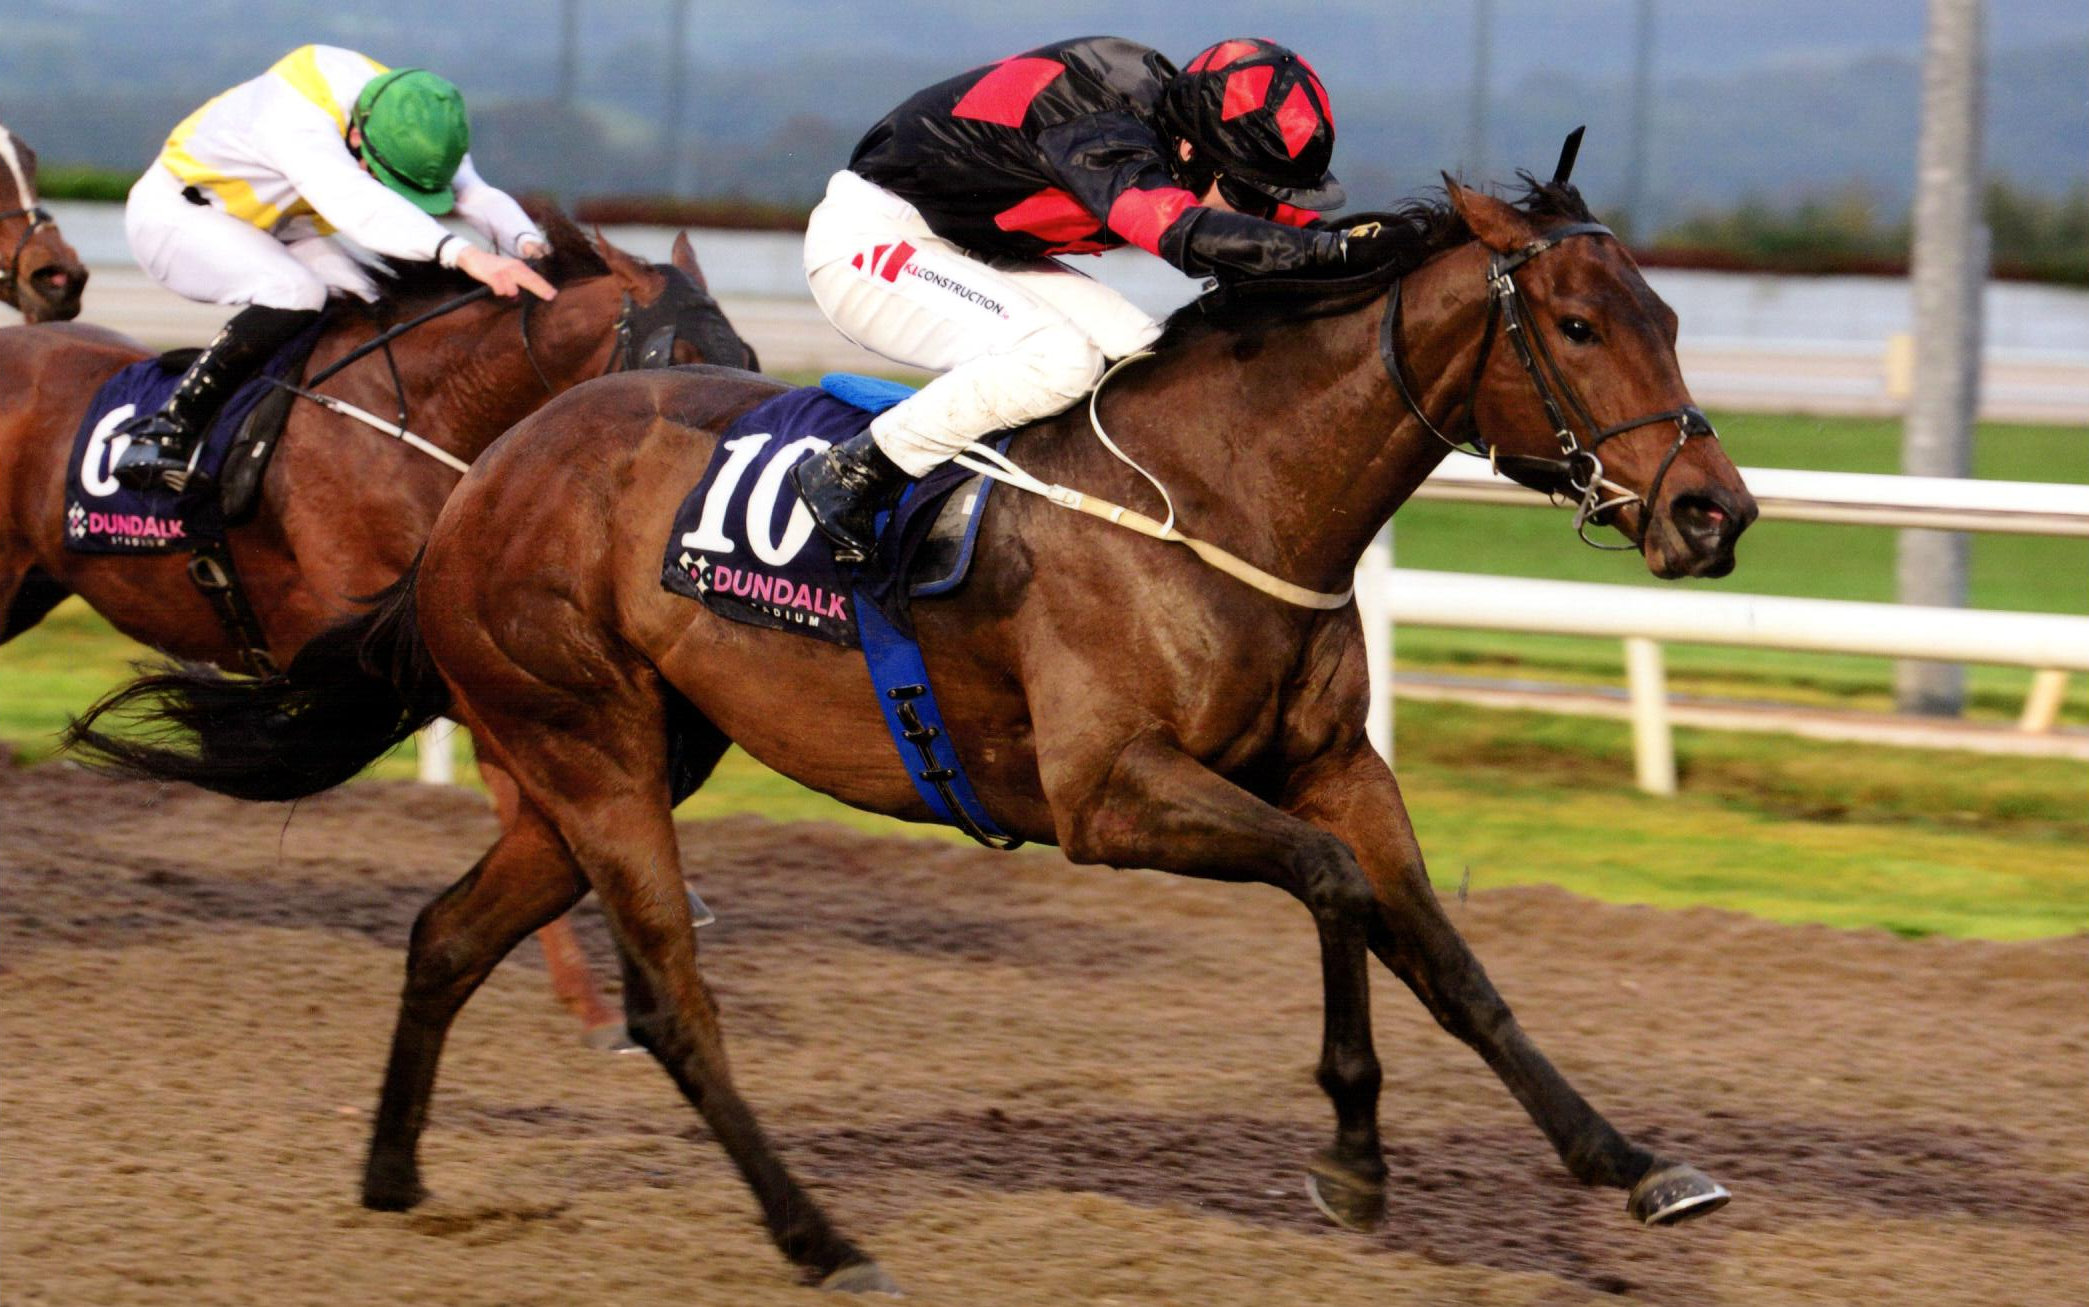 Pulse Racing land a winner with SCREAM over 7 furlongs at Dundalk, 25th October 2019